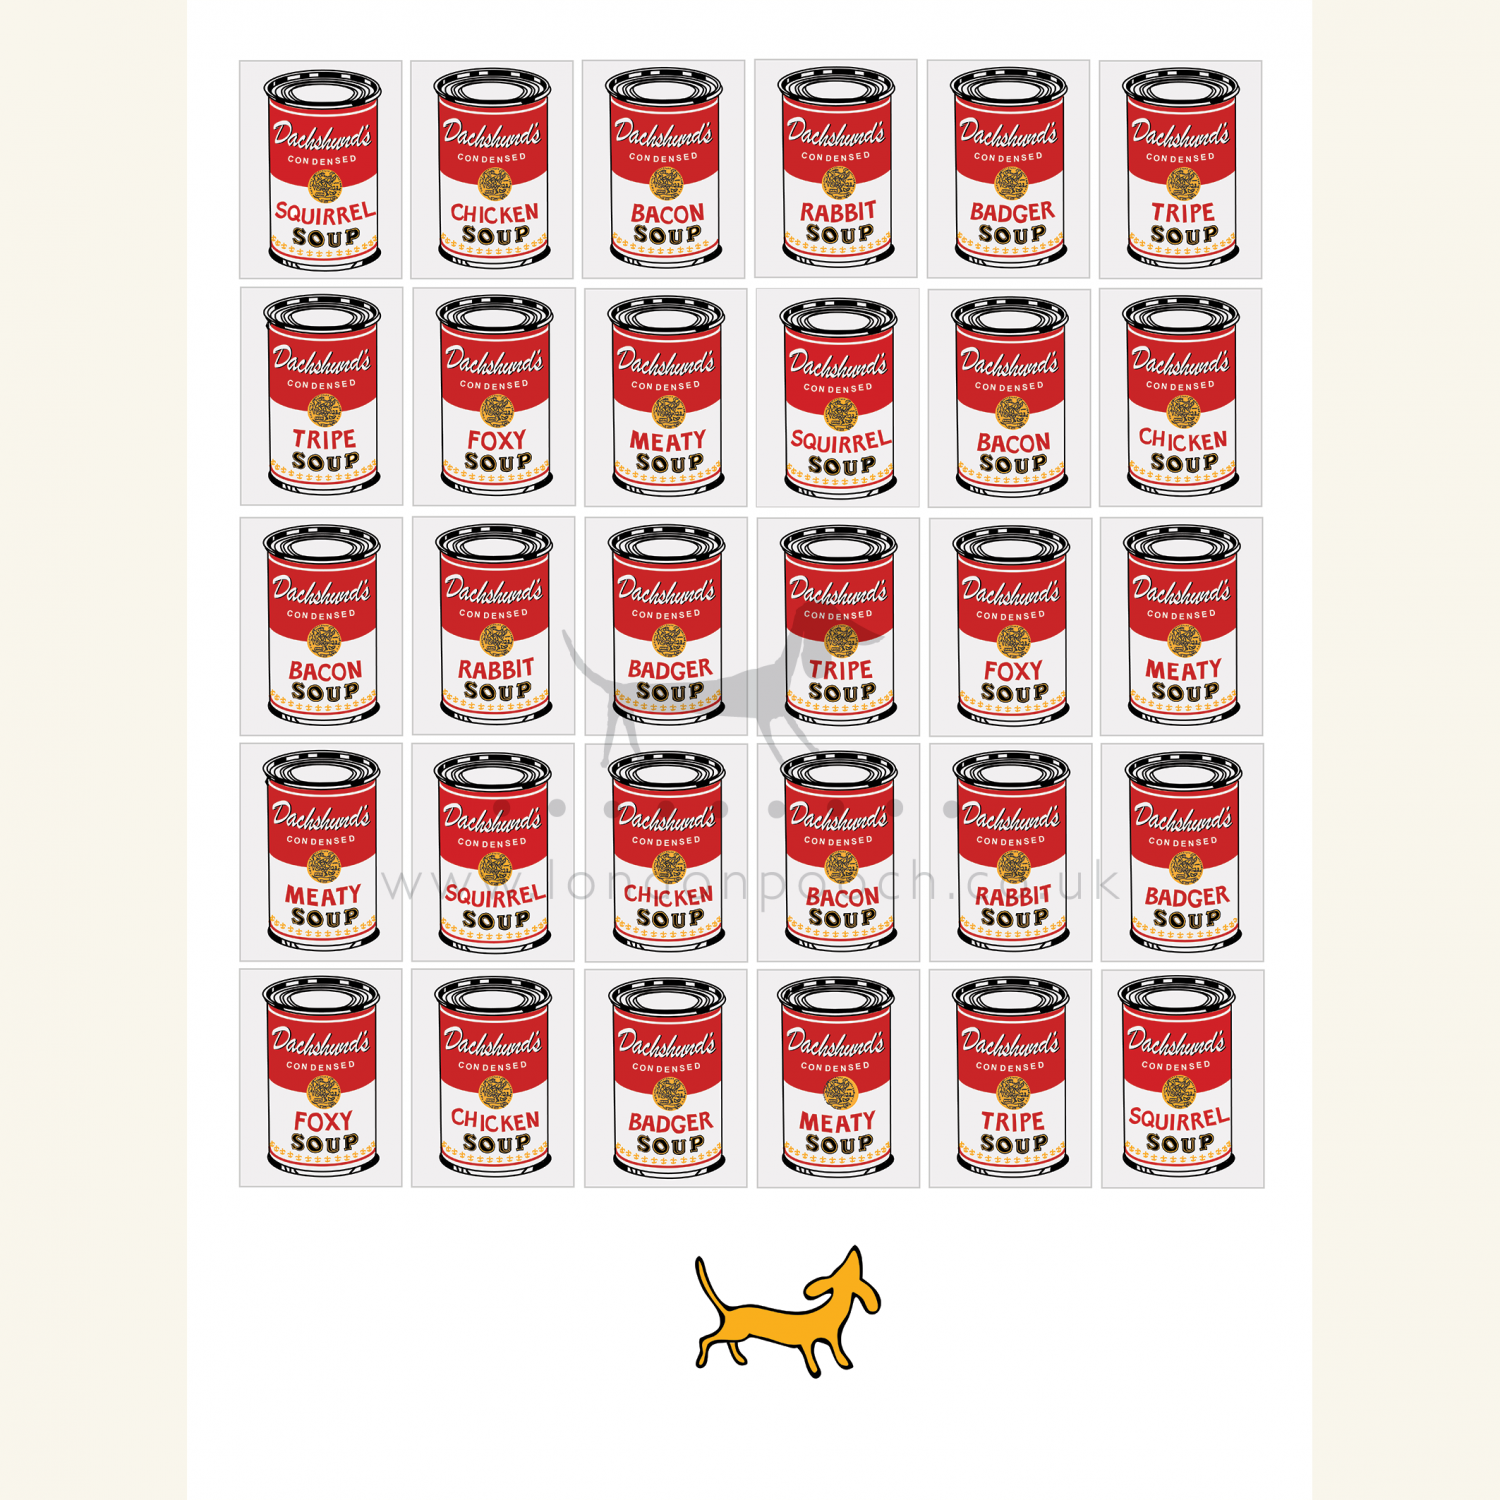 Dachshund Soup Print is a parody on Warhols Soup can art with a Dachshund preference